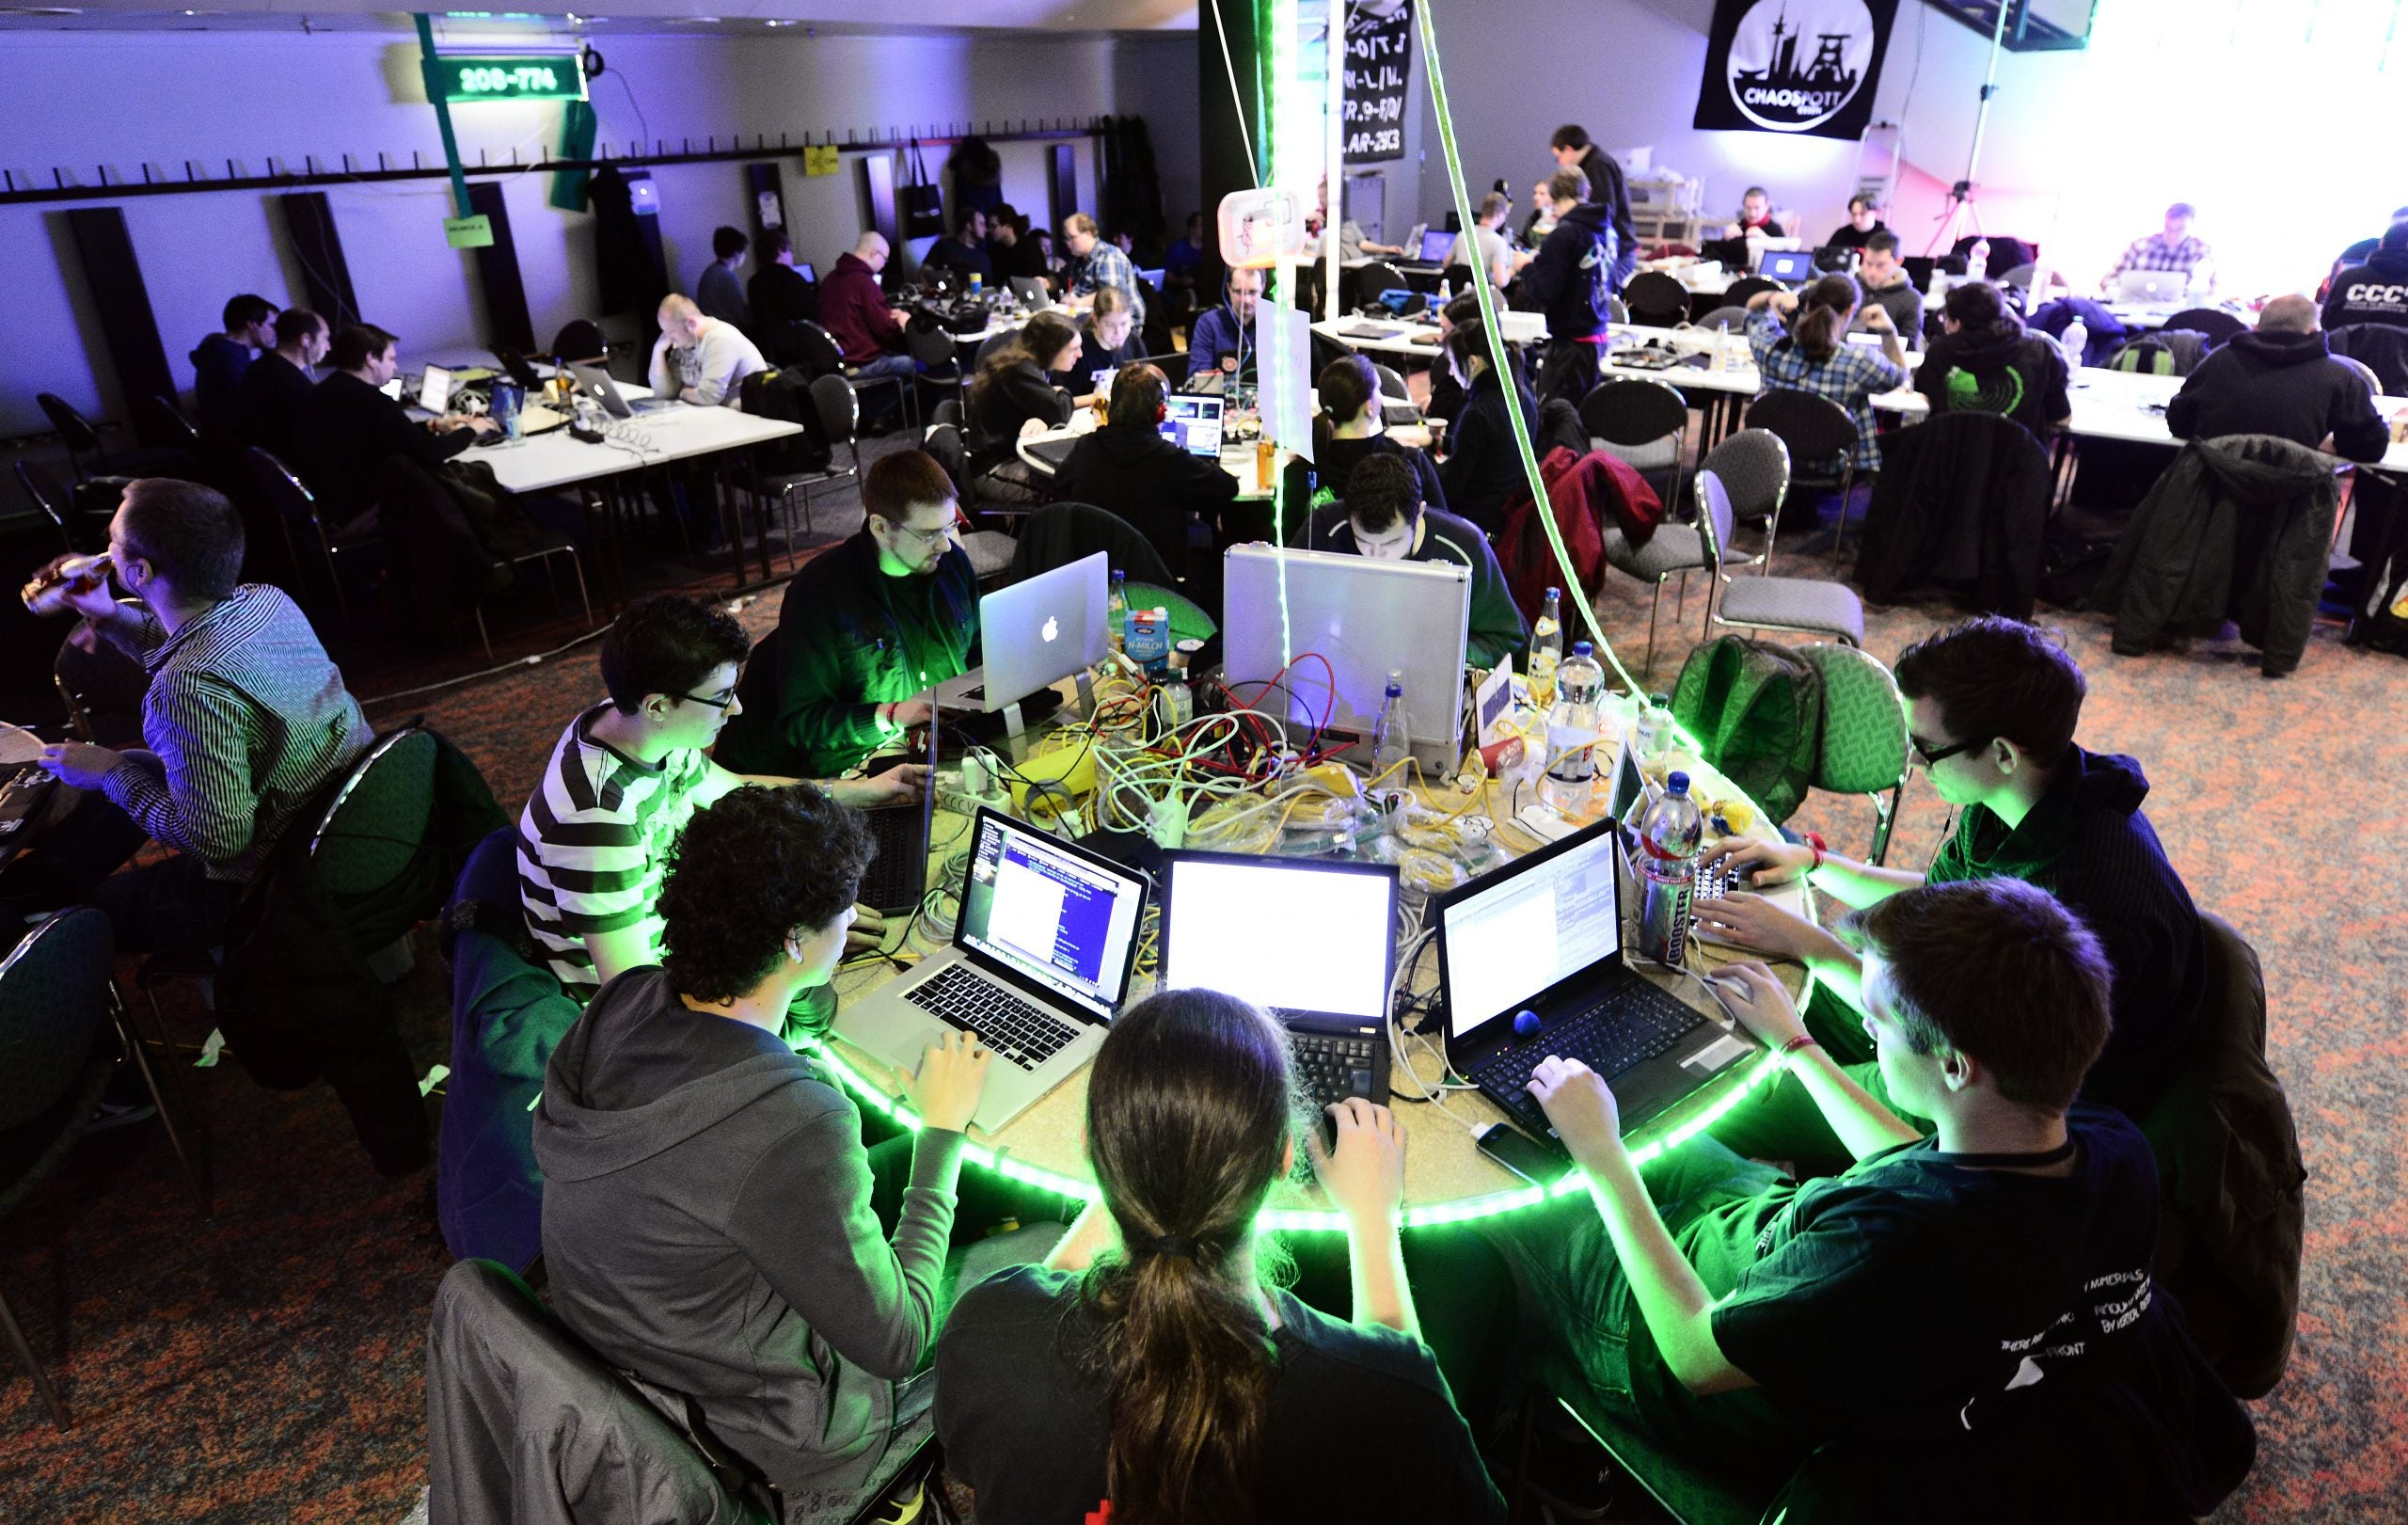 Friendly hackers are reshaping the digital economy